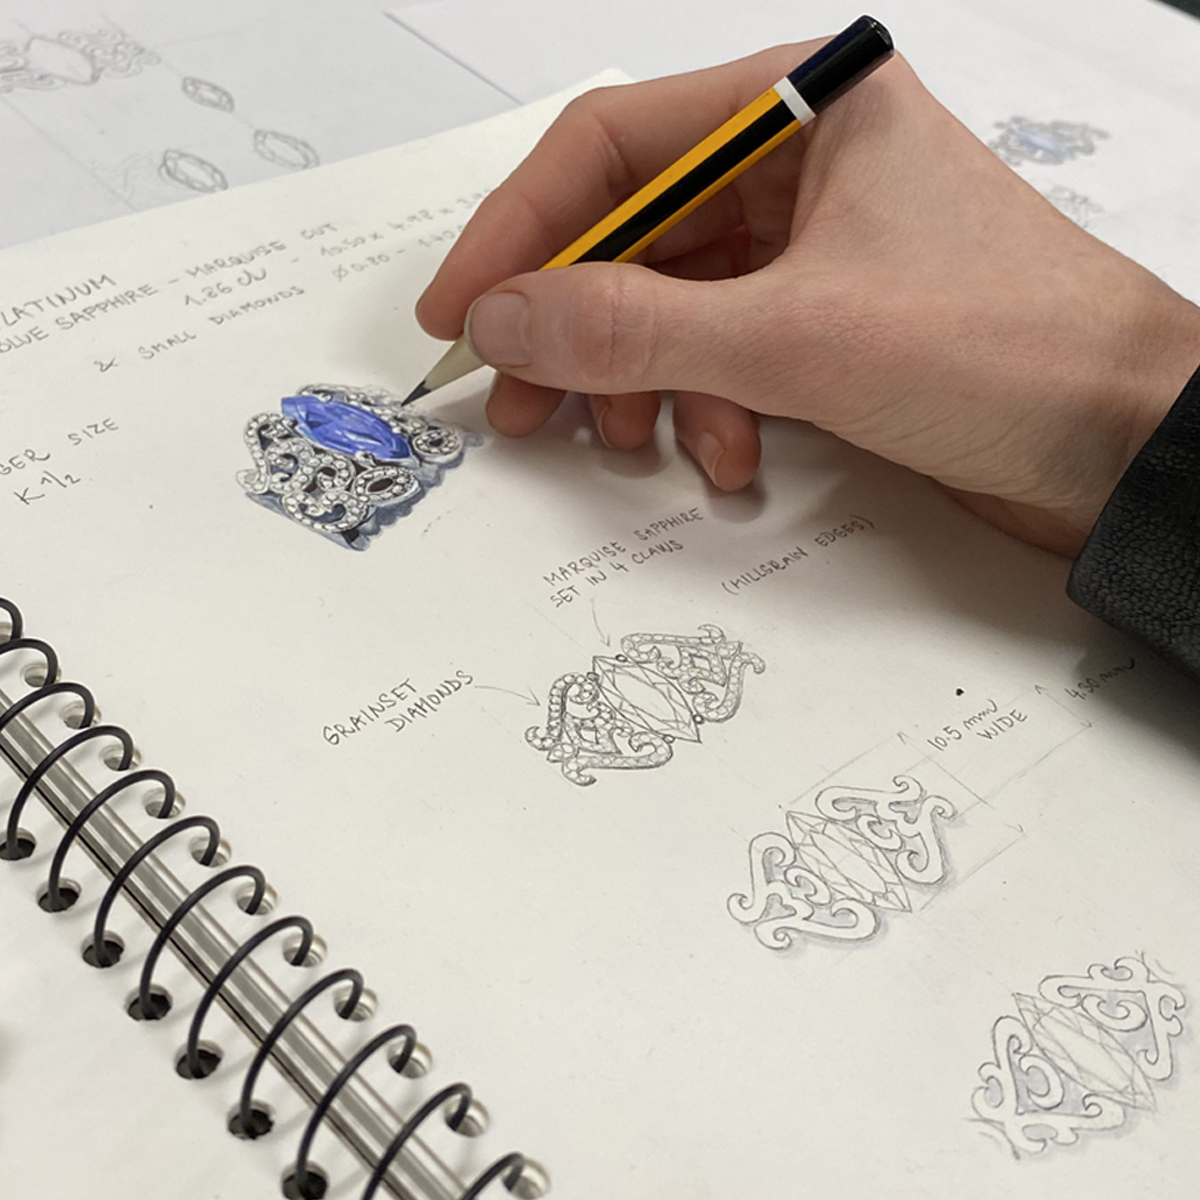 bespoke jewellery design sketches on paper